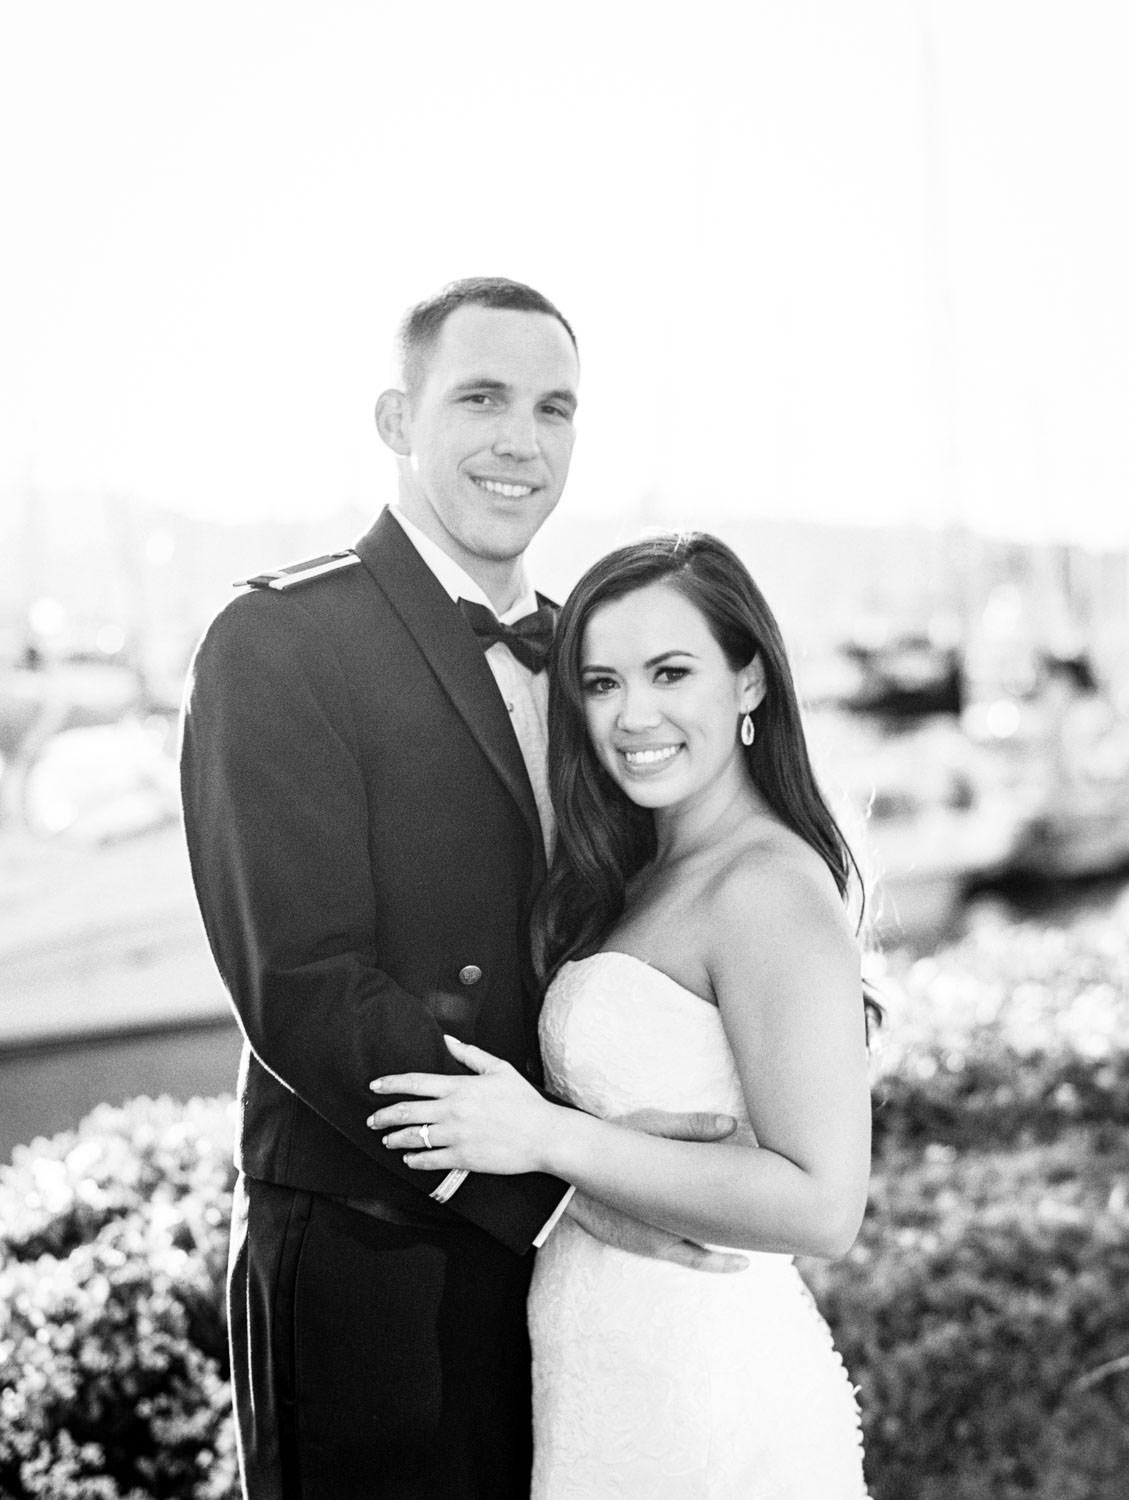 Black and white classic bride and groom portrait during sunset captured on film. Wedding at Humphreys Half Moon Inn by Cavin Elizabeth Photography